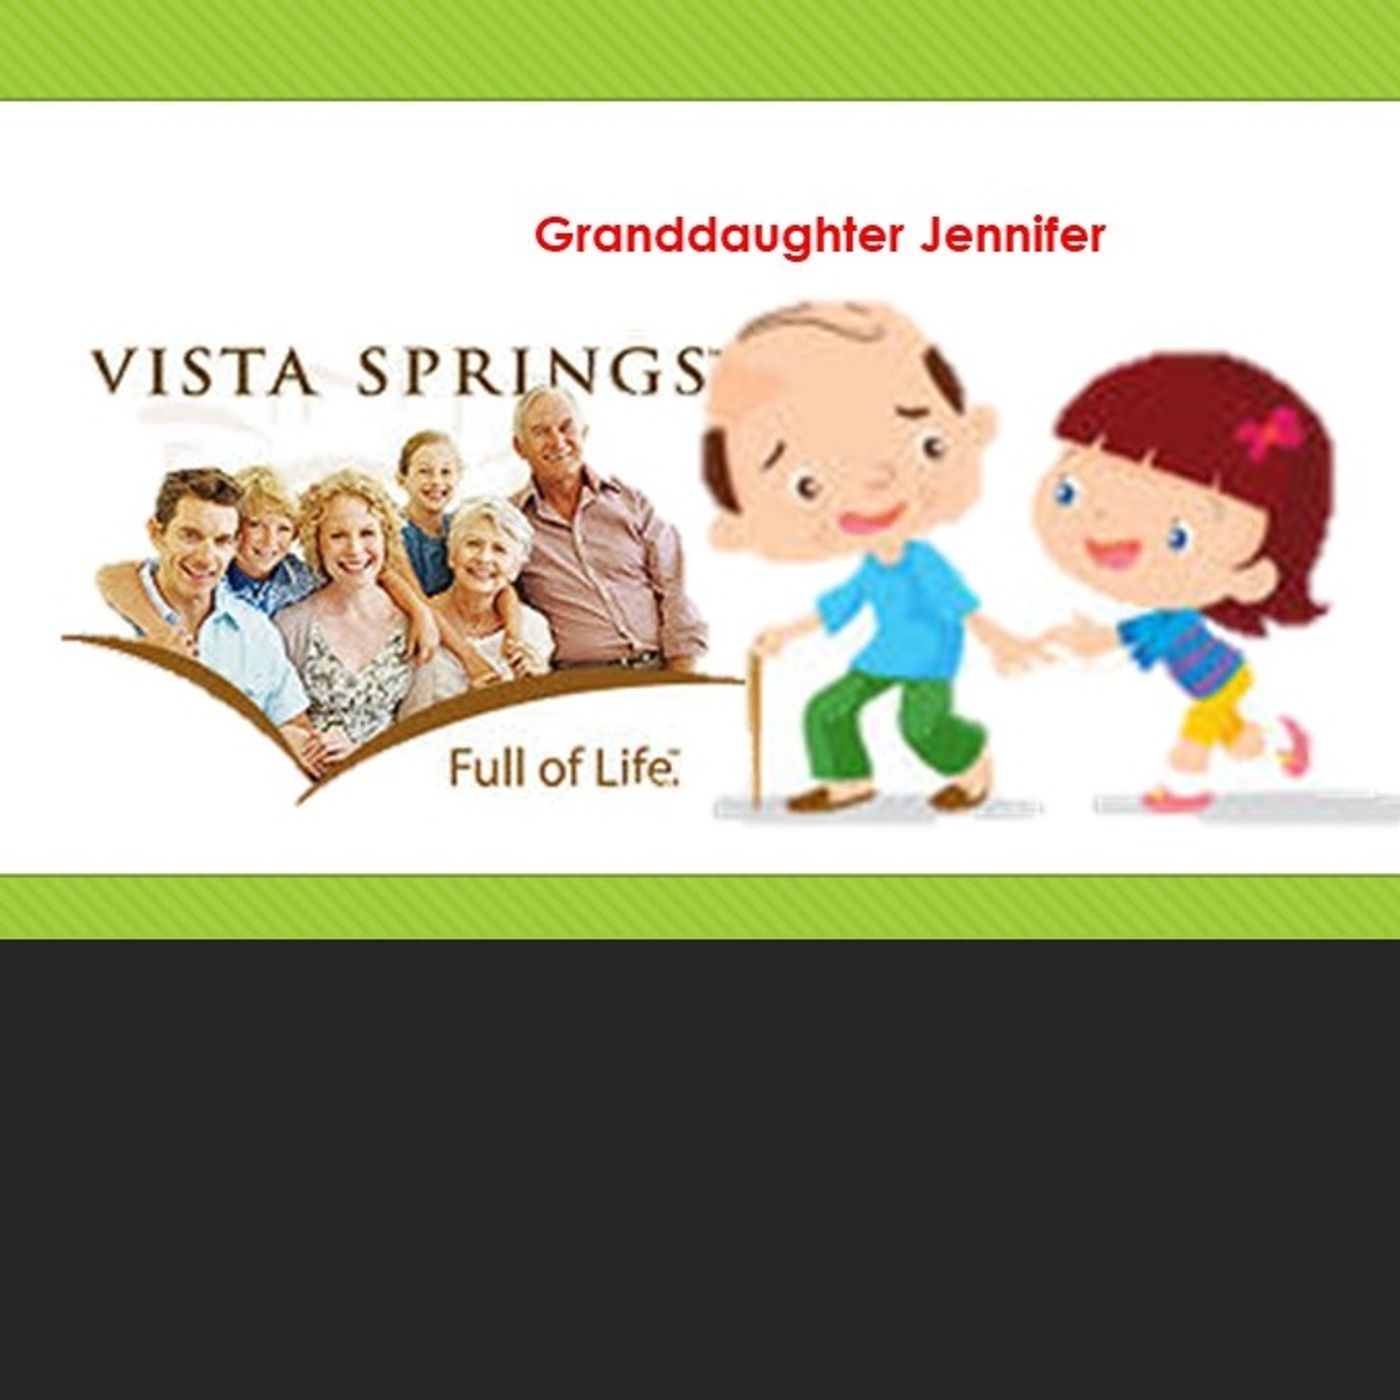 vista-springs_-jennifer-shares-stories-of-her-loving-grandfather-11_5_18